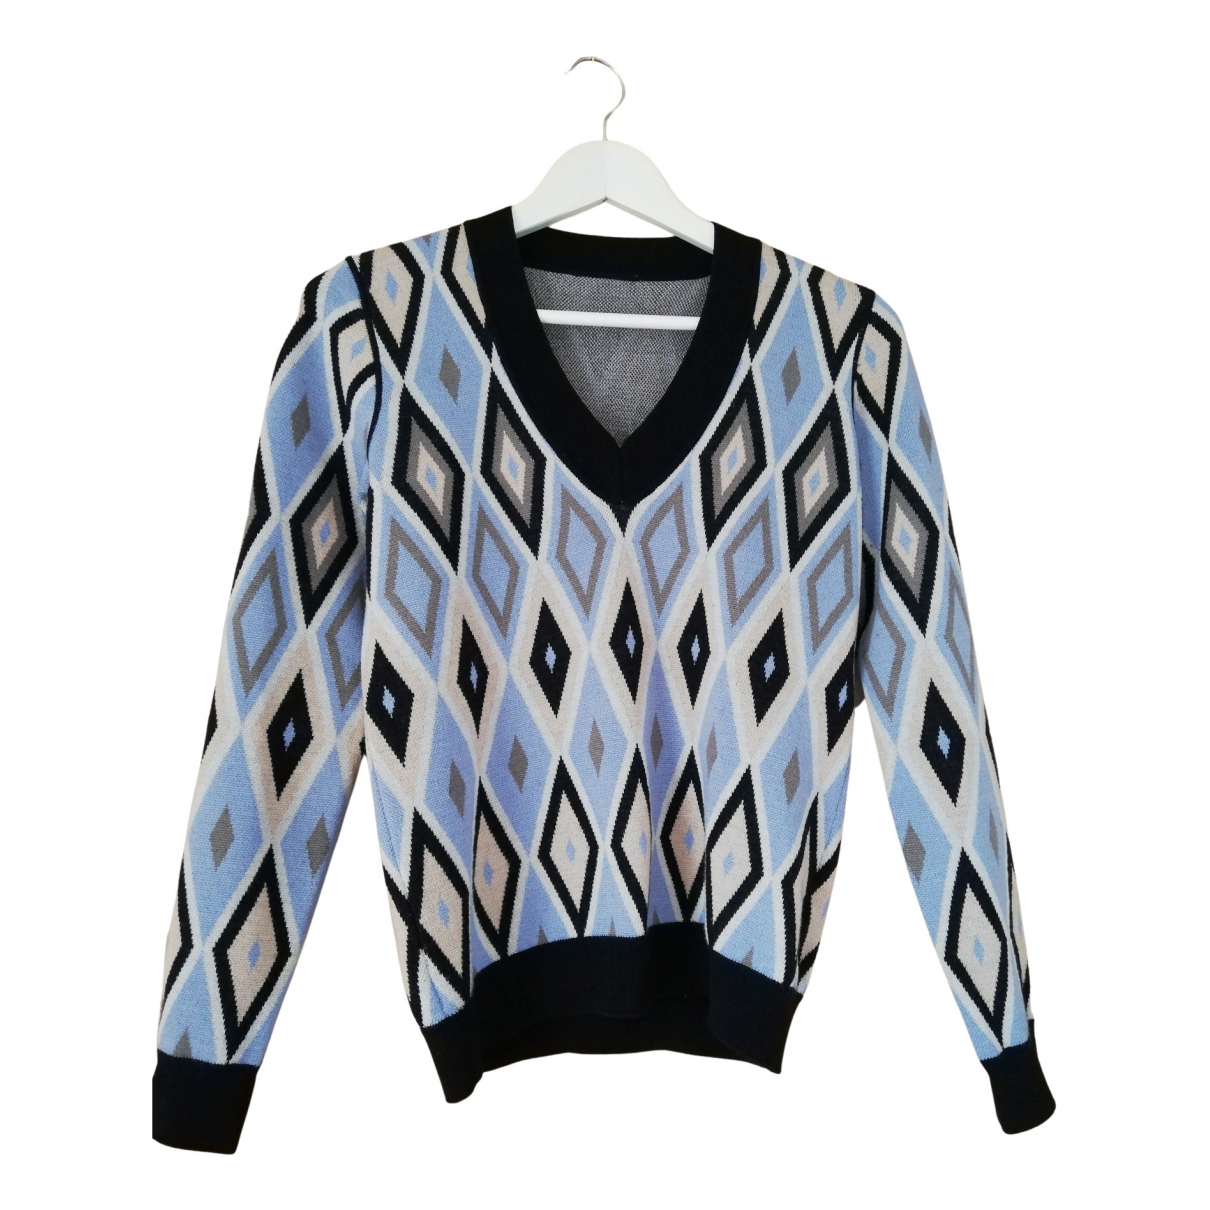 Giorgio Armani N Blue Wool Knitwear for Women 38 FR